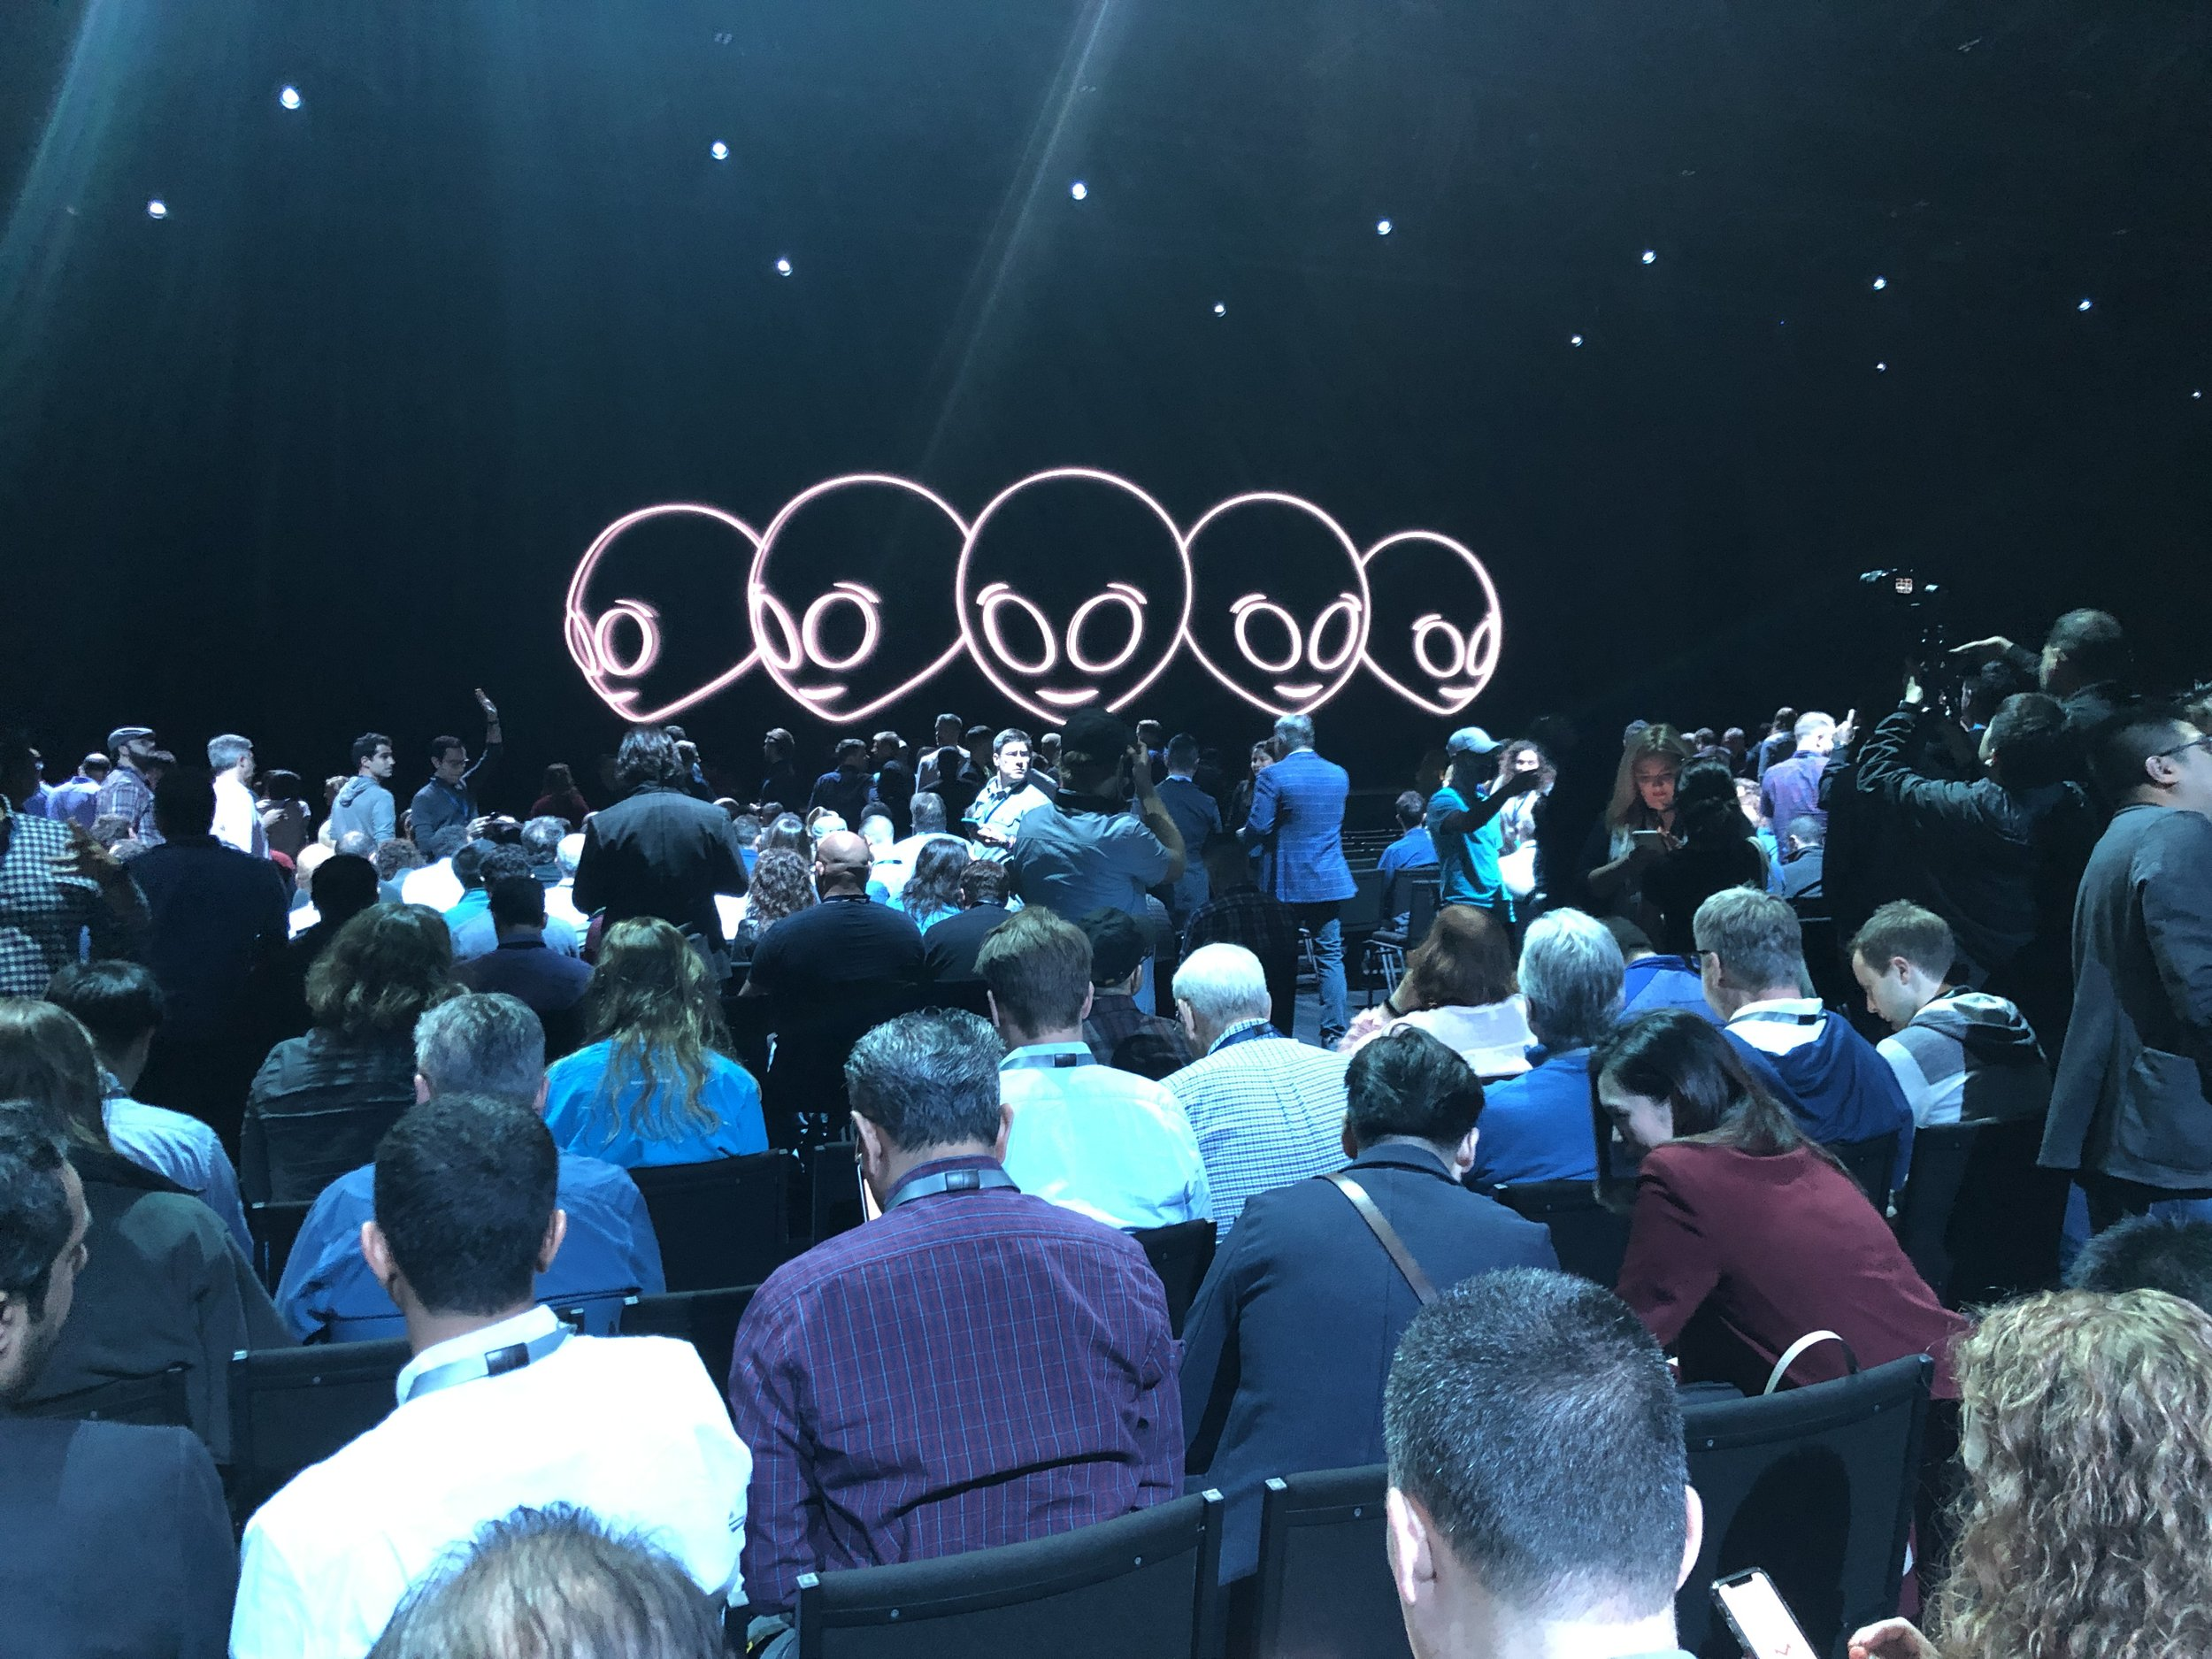 Waiting for the Keynote